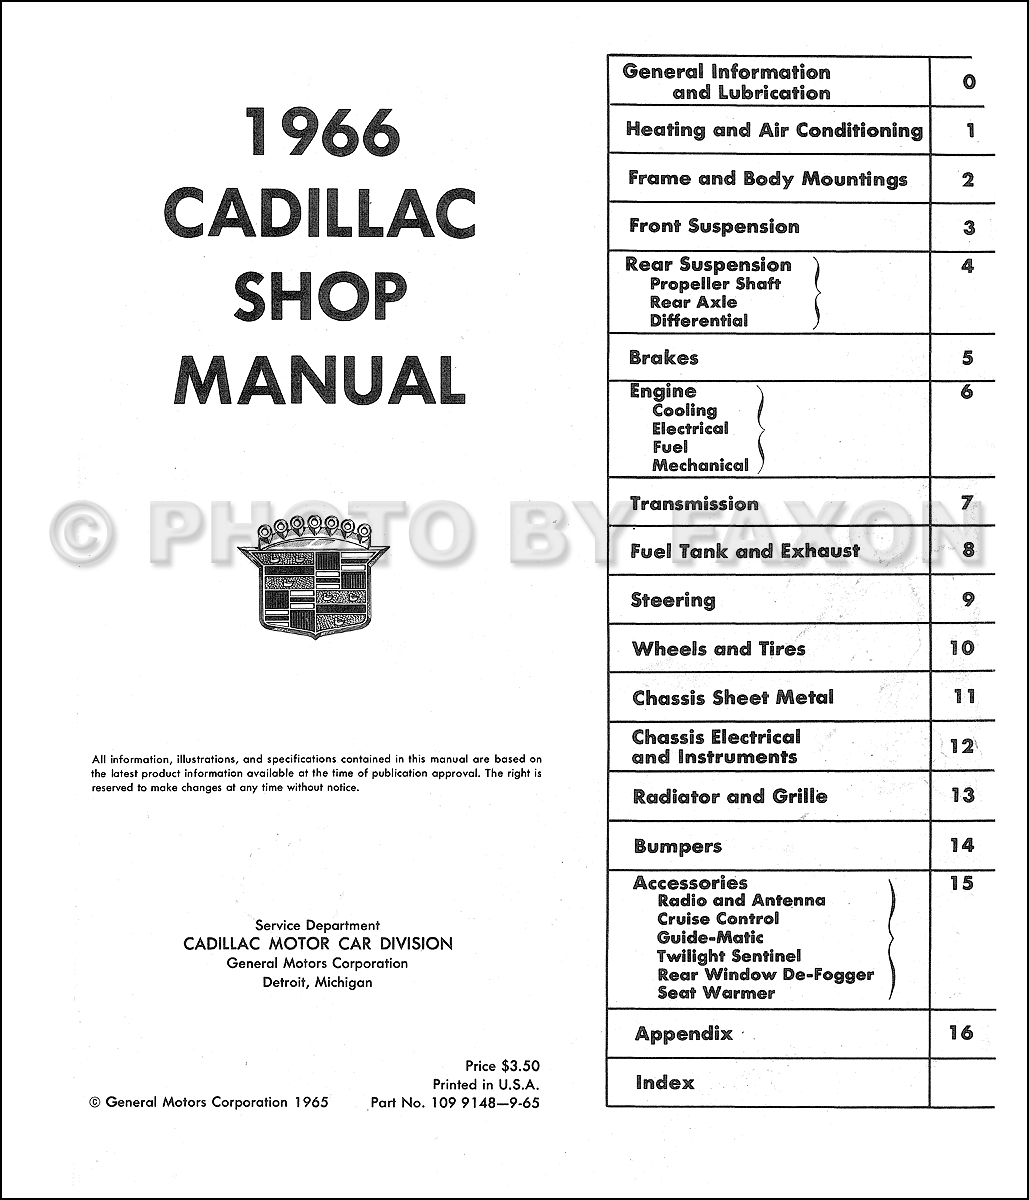 1966 Cadillac Repair Shop Manual Reprint on cadillac fuse box diagram, 1963 cadillac vacuum diagrams, cadillac wiring parts, cadillac ac diagram, cadillac deville starter wiring, cadillac troubleshooting, 2000 cadillac eldorado electrical diagrams, cadillac manual transmission,